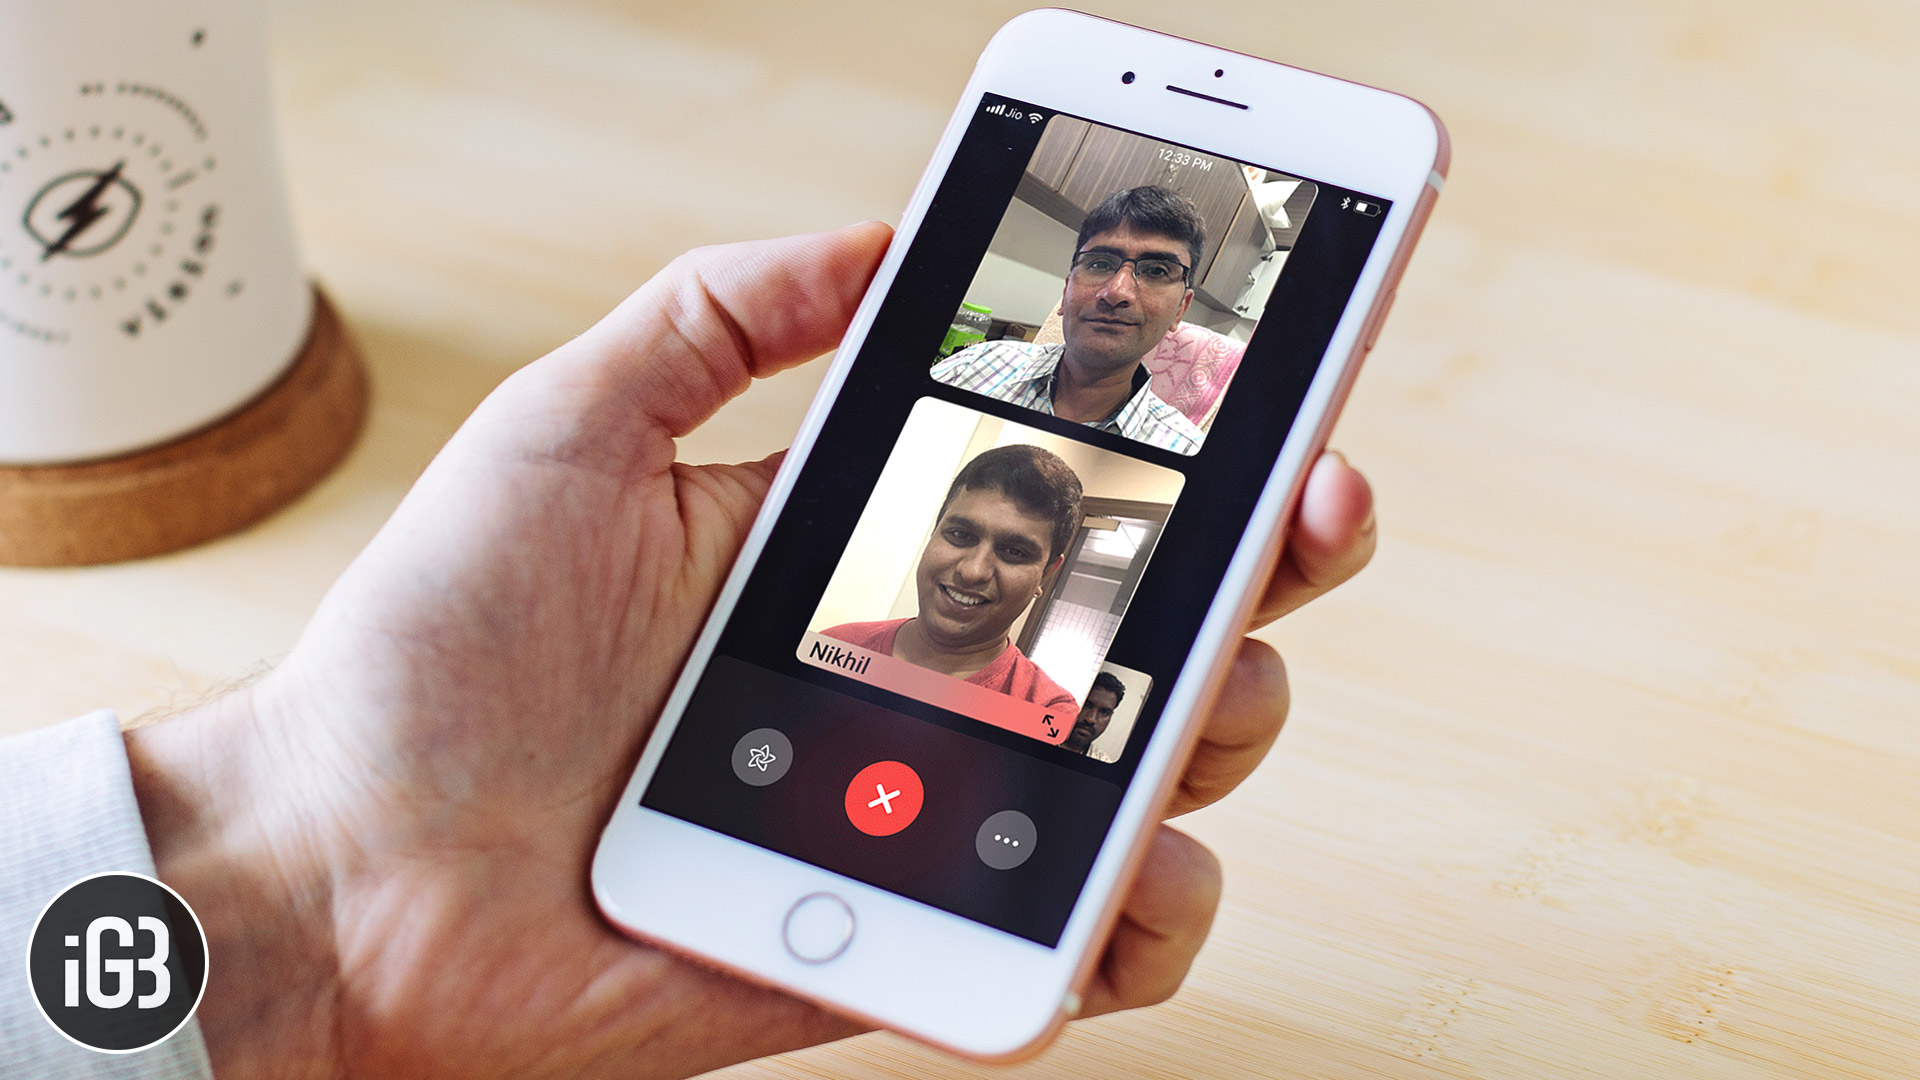 How to Make Group FaceTime Calls in iOS 12 on iPhone or iPad